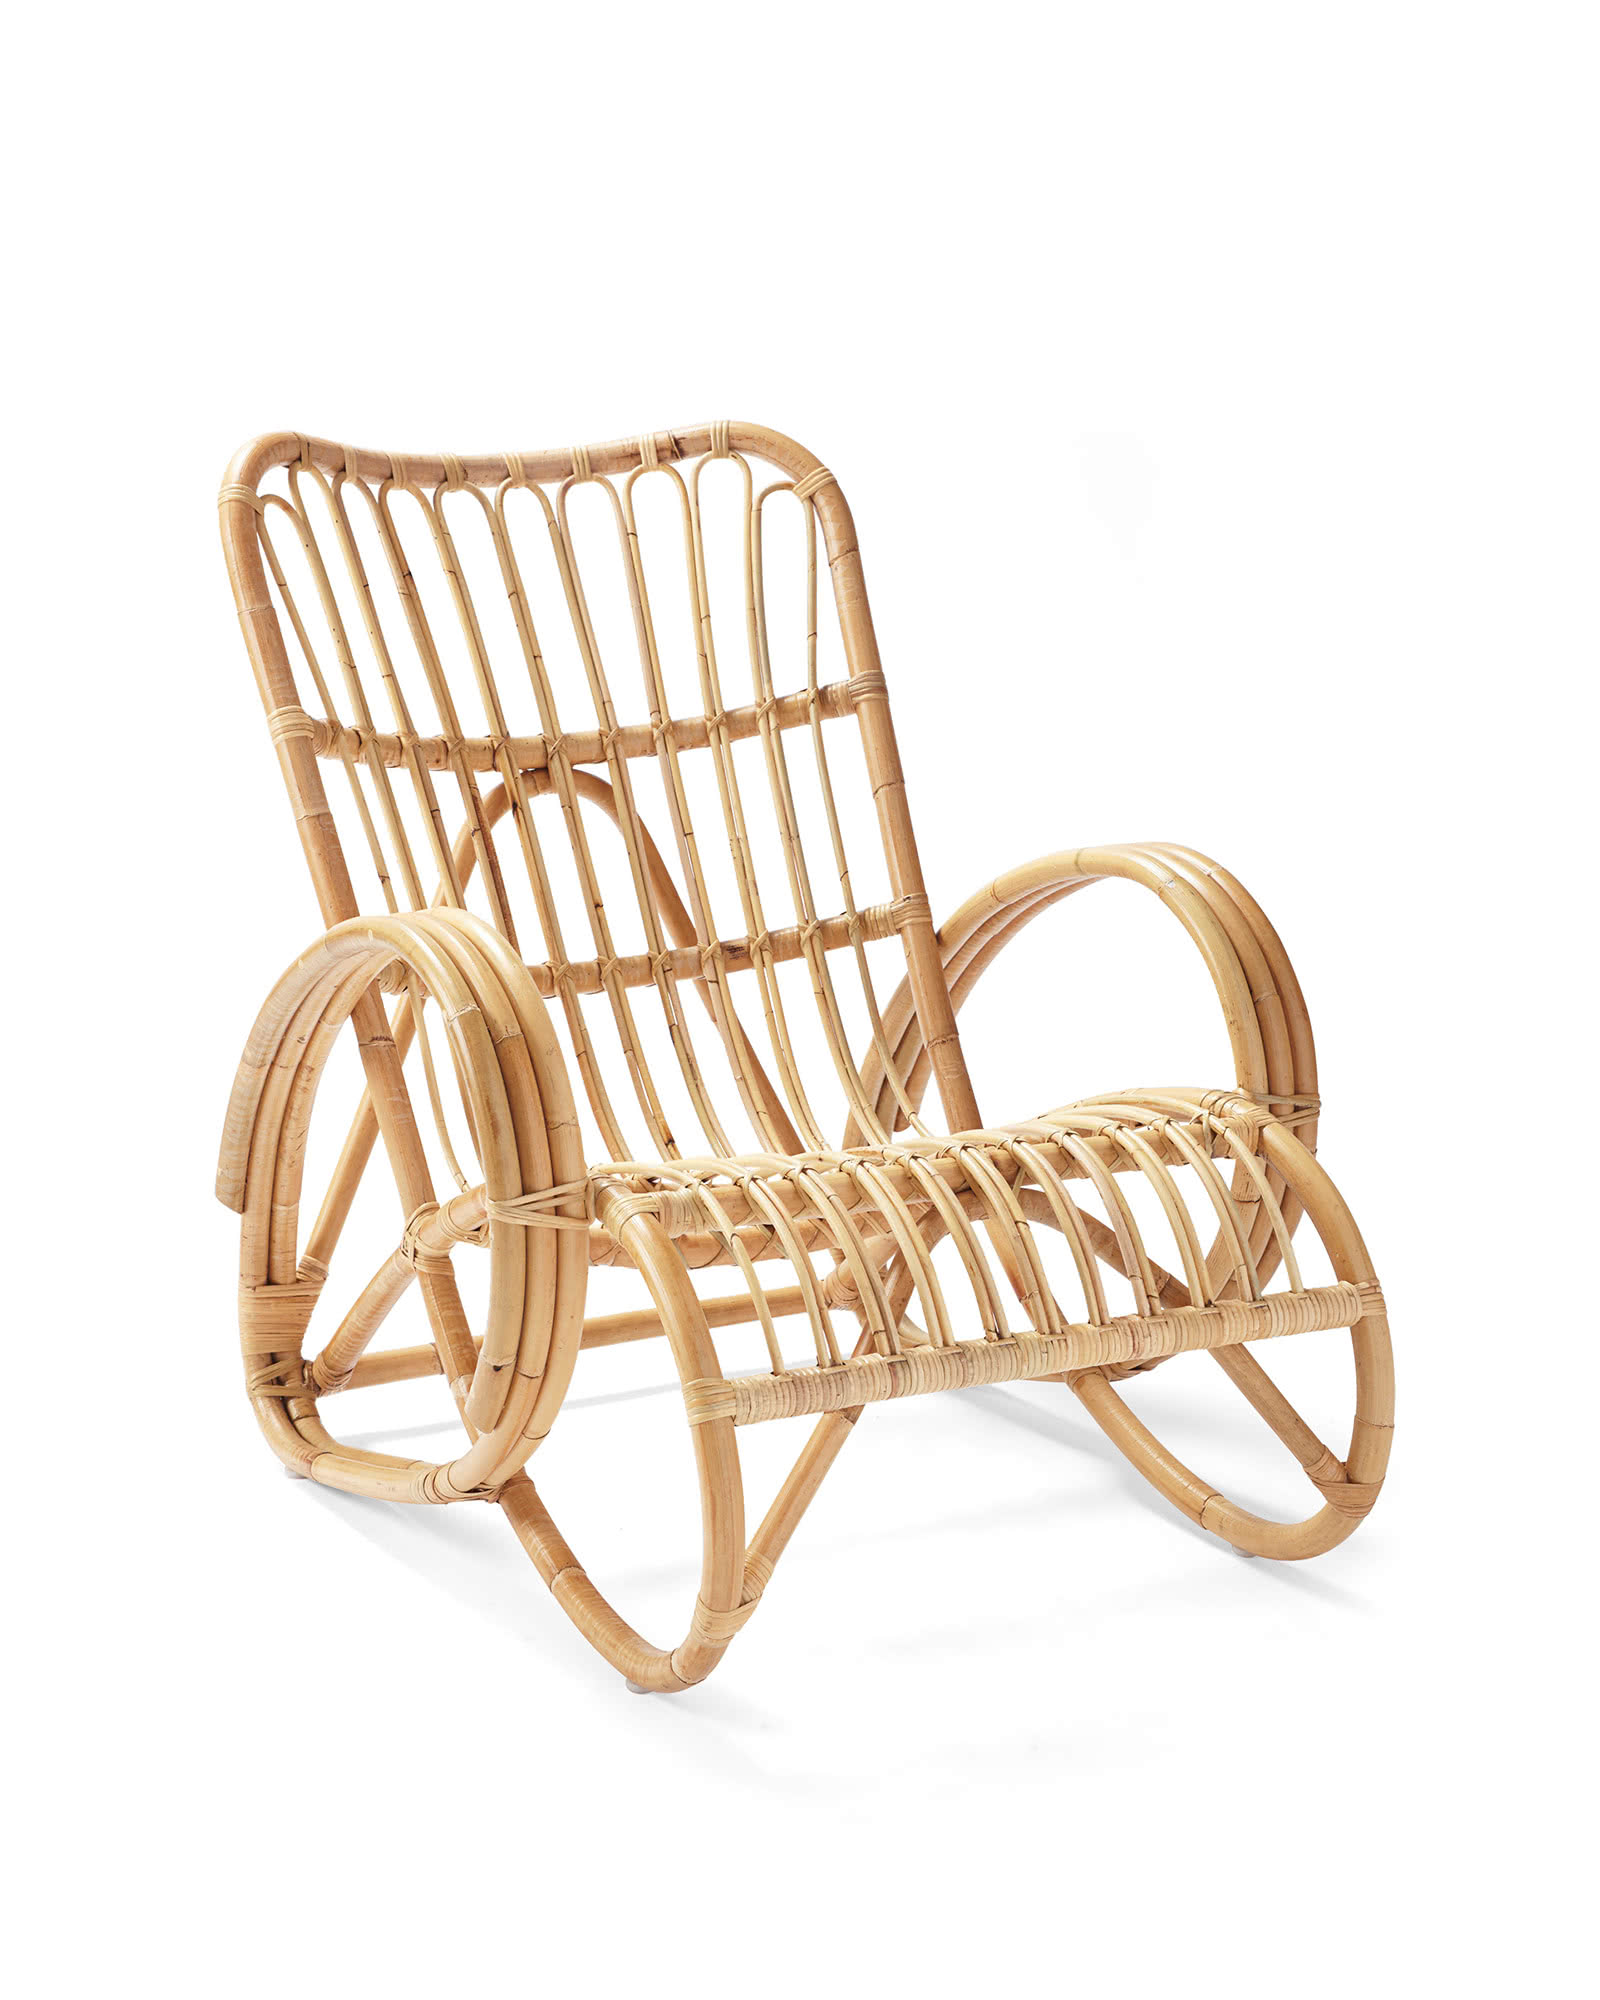 chairs chair table and effect tylerandrews rattan